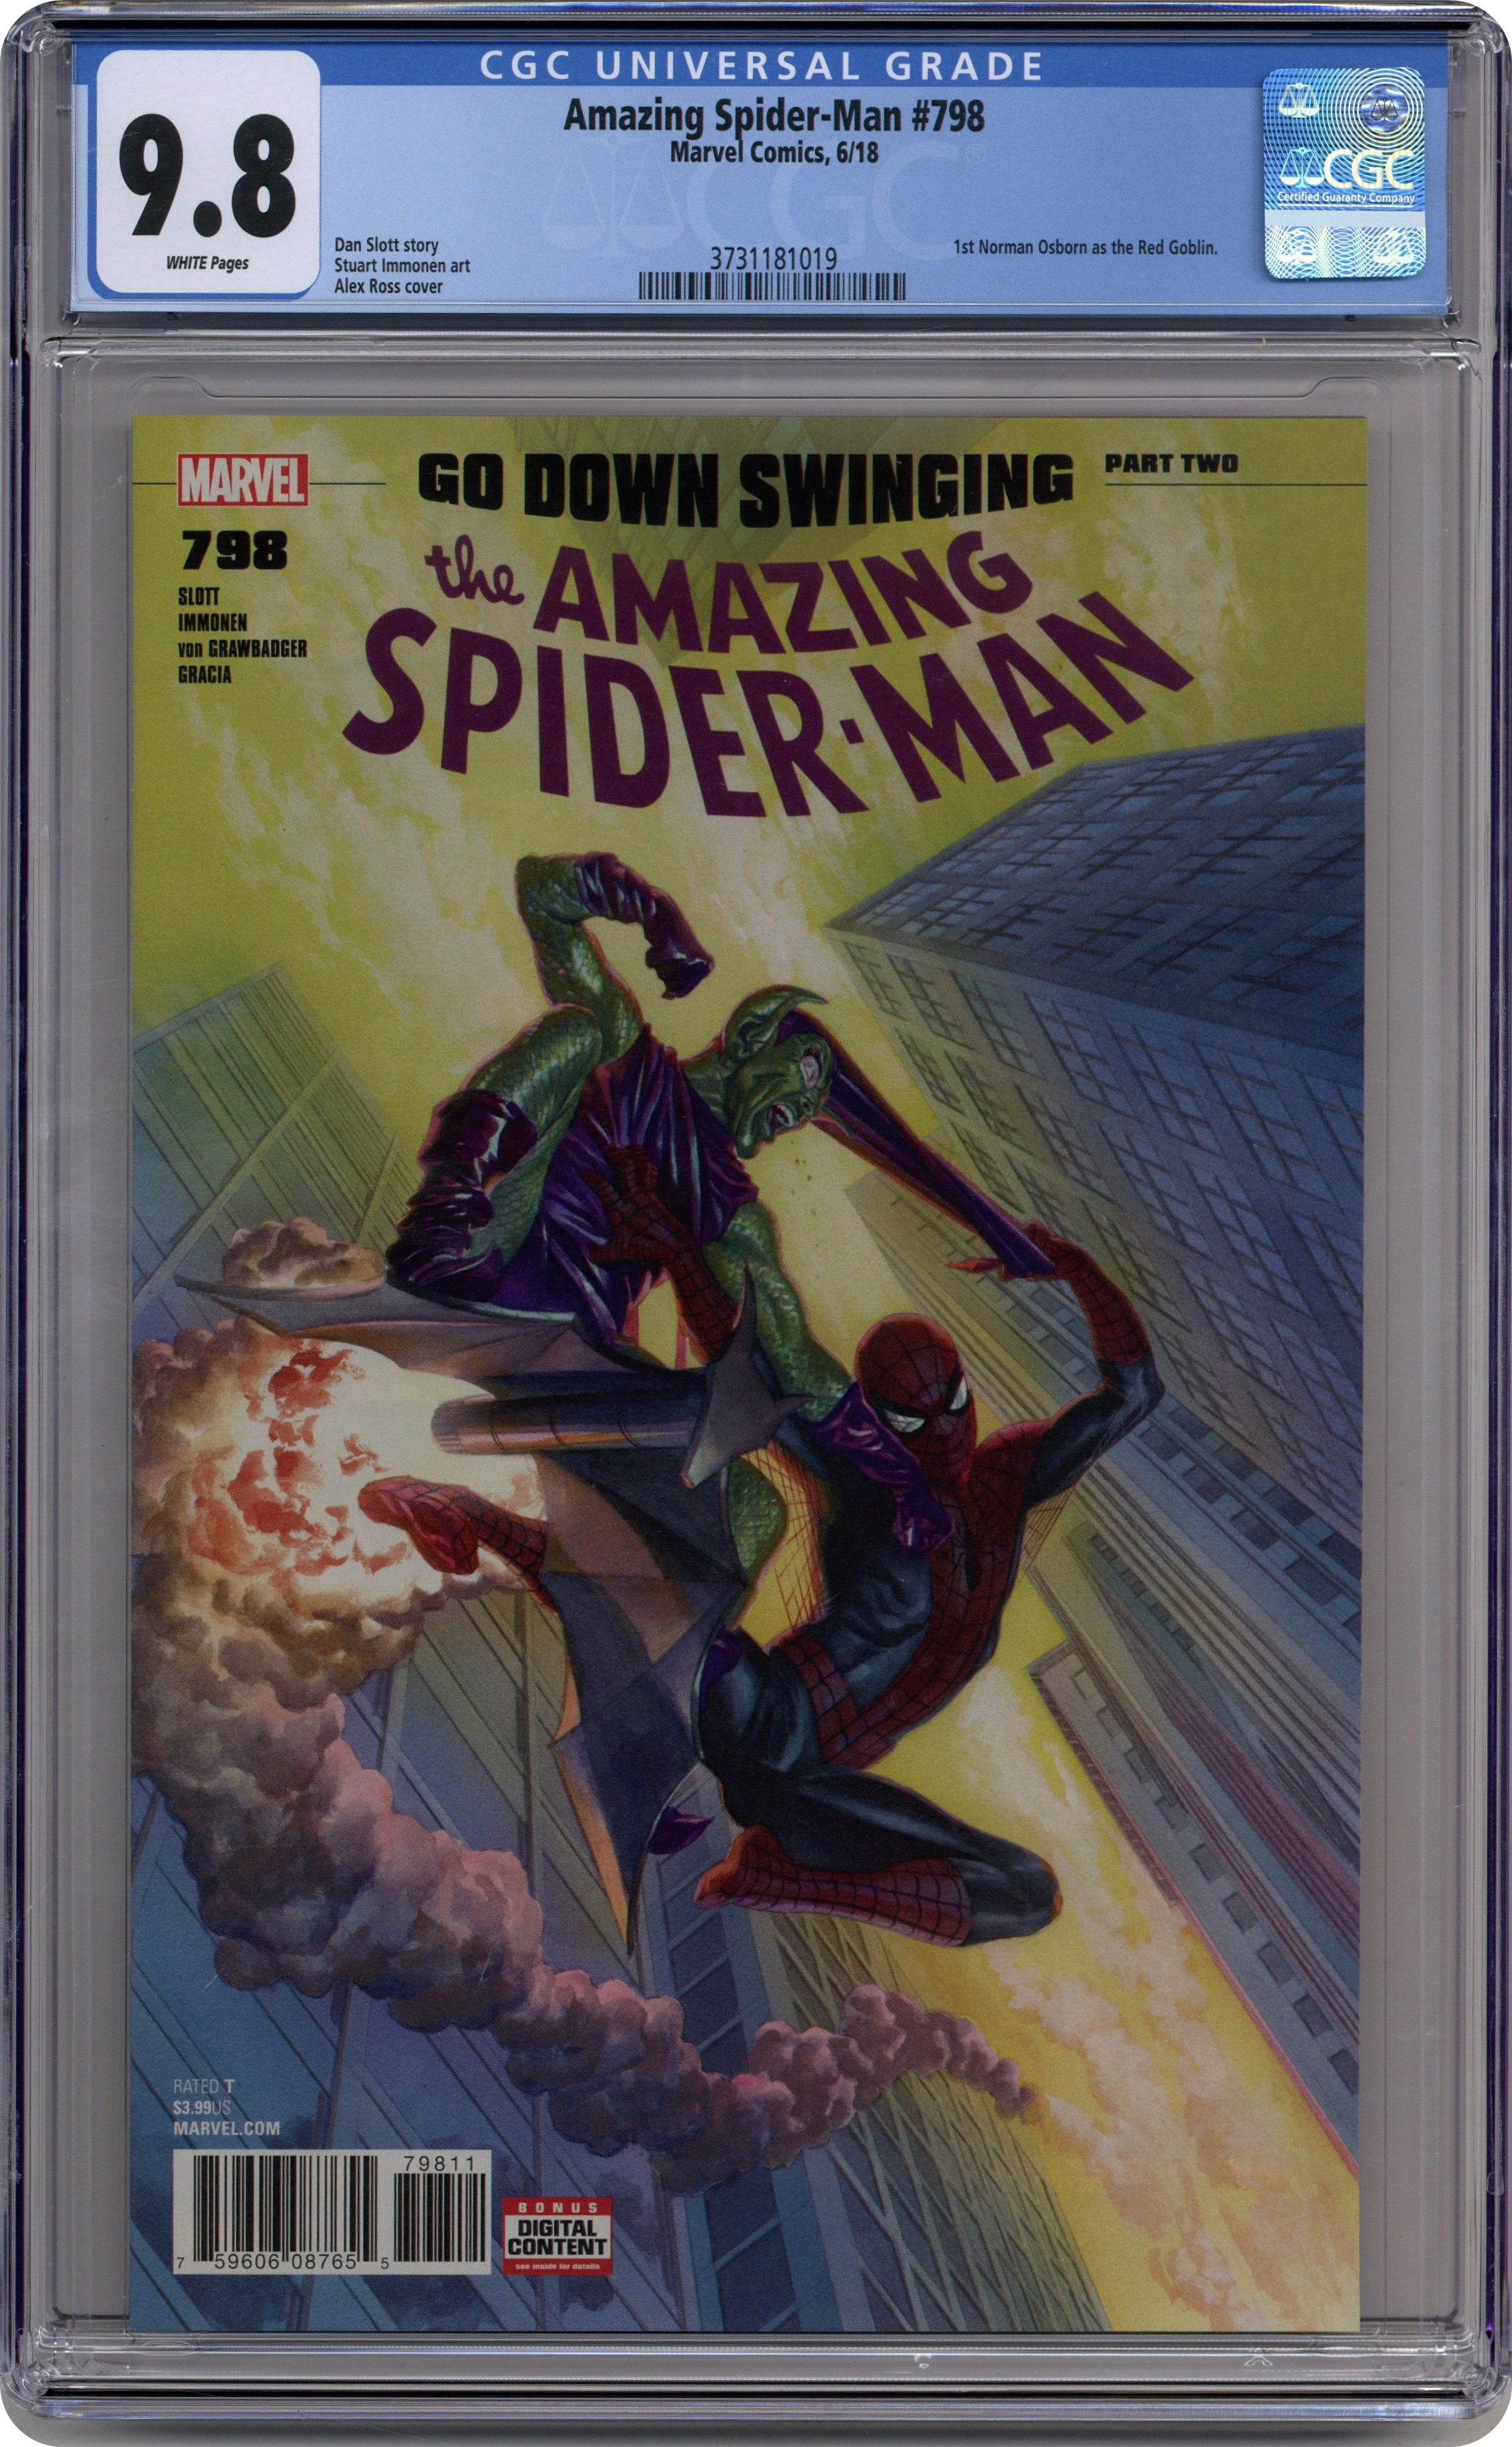 AMAZING SPIDER-MAN ONGOING SERIES LISTING STARTS AT #798//2018 #1-48 INCLUDED